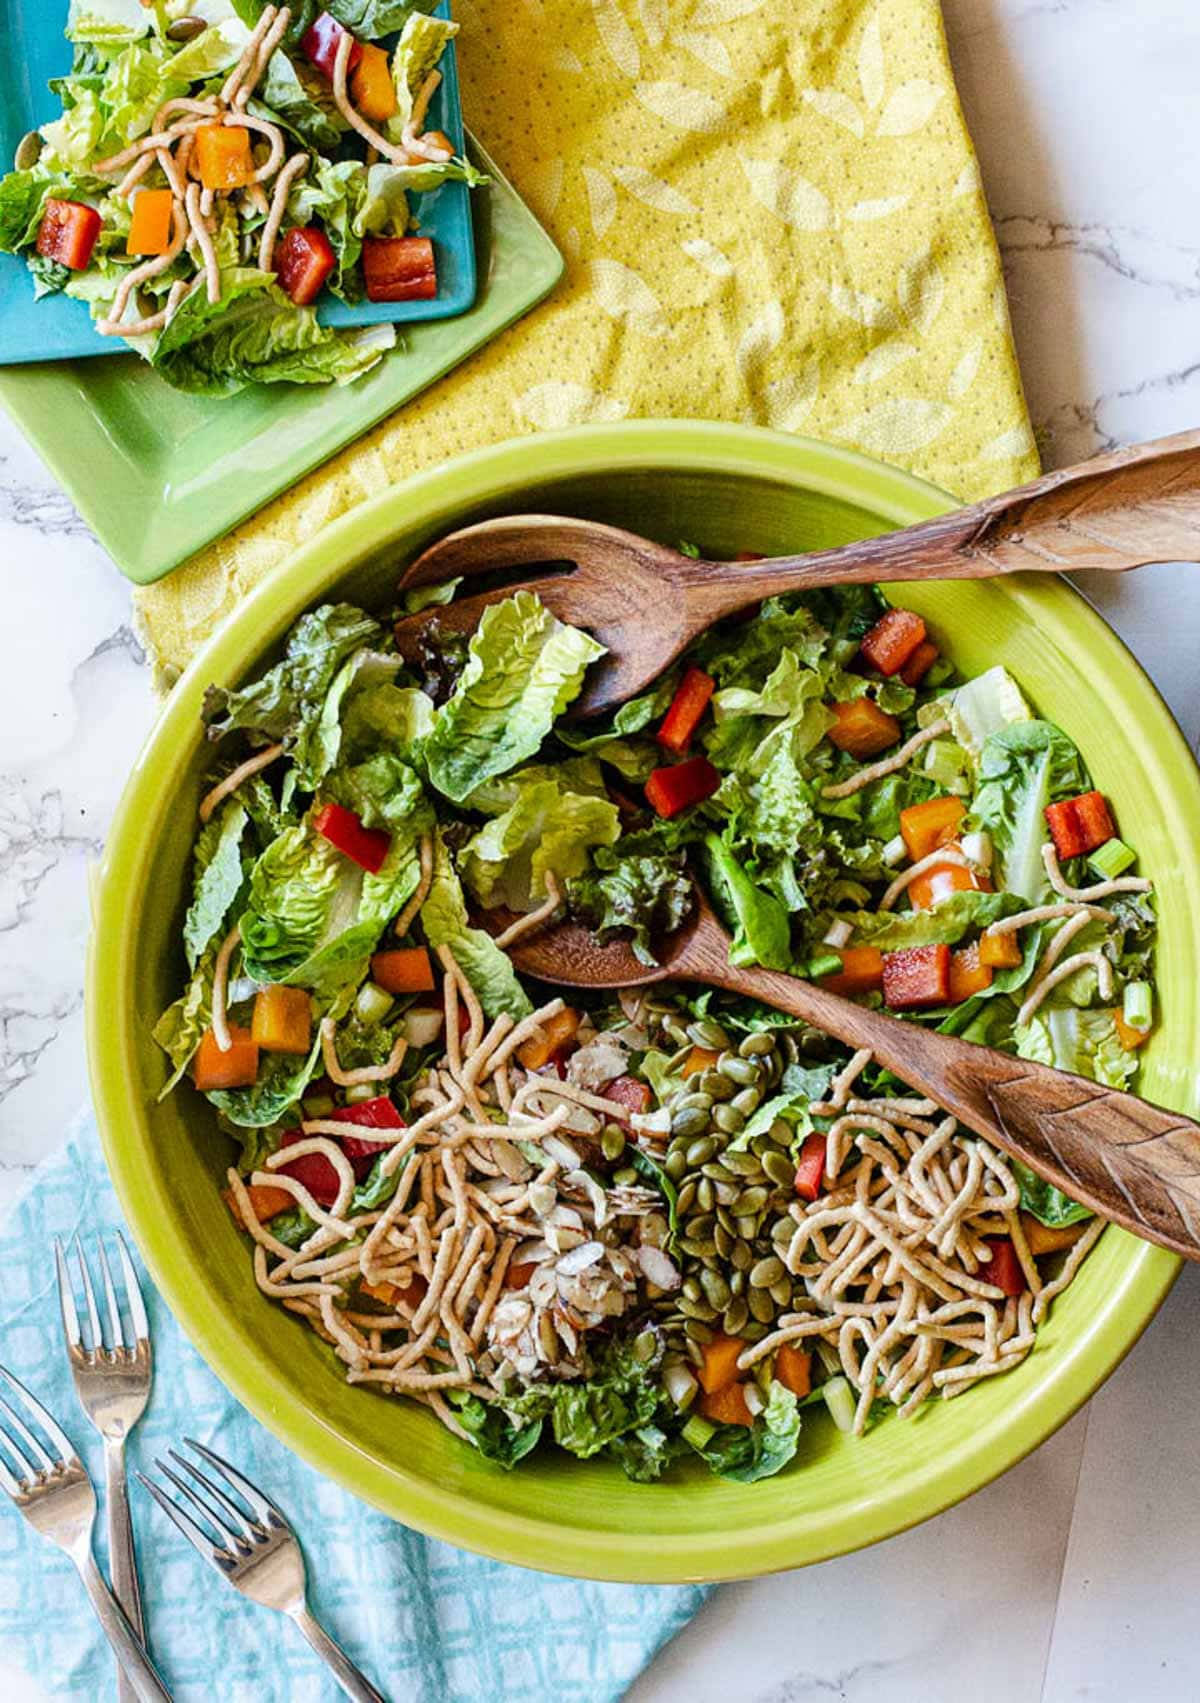 Green Tossed salad topped with crispy chow mein noodles and pumpkin seeds